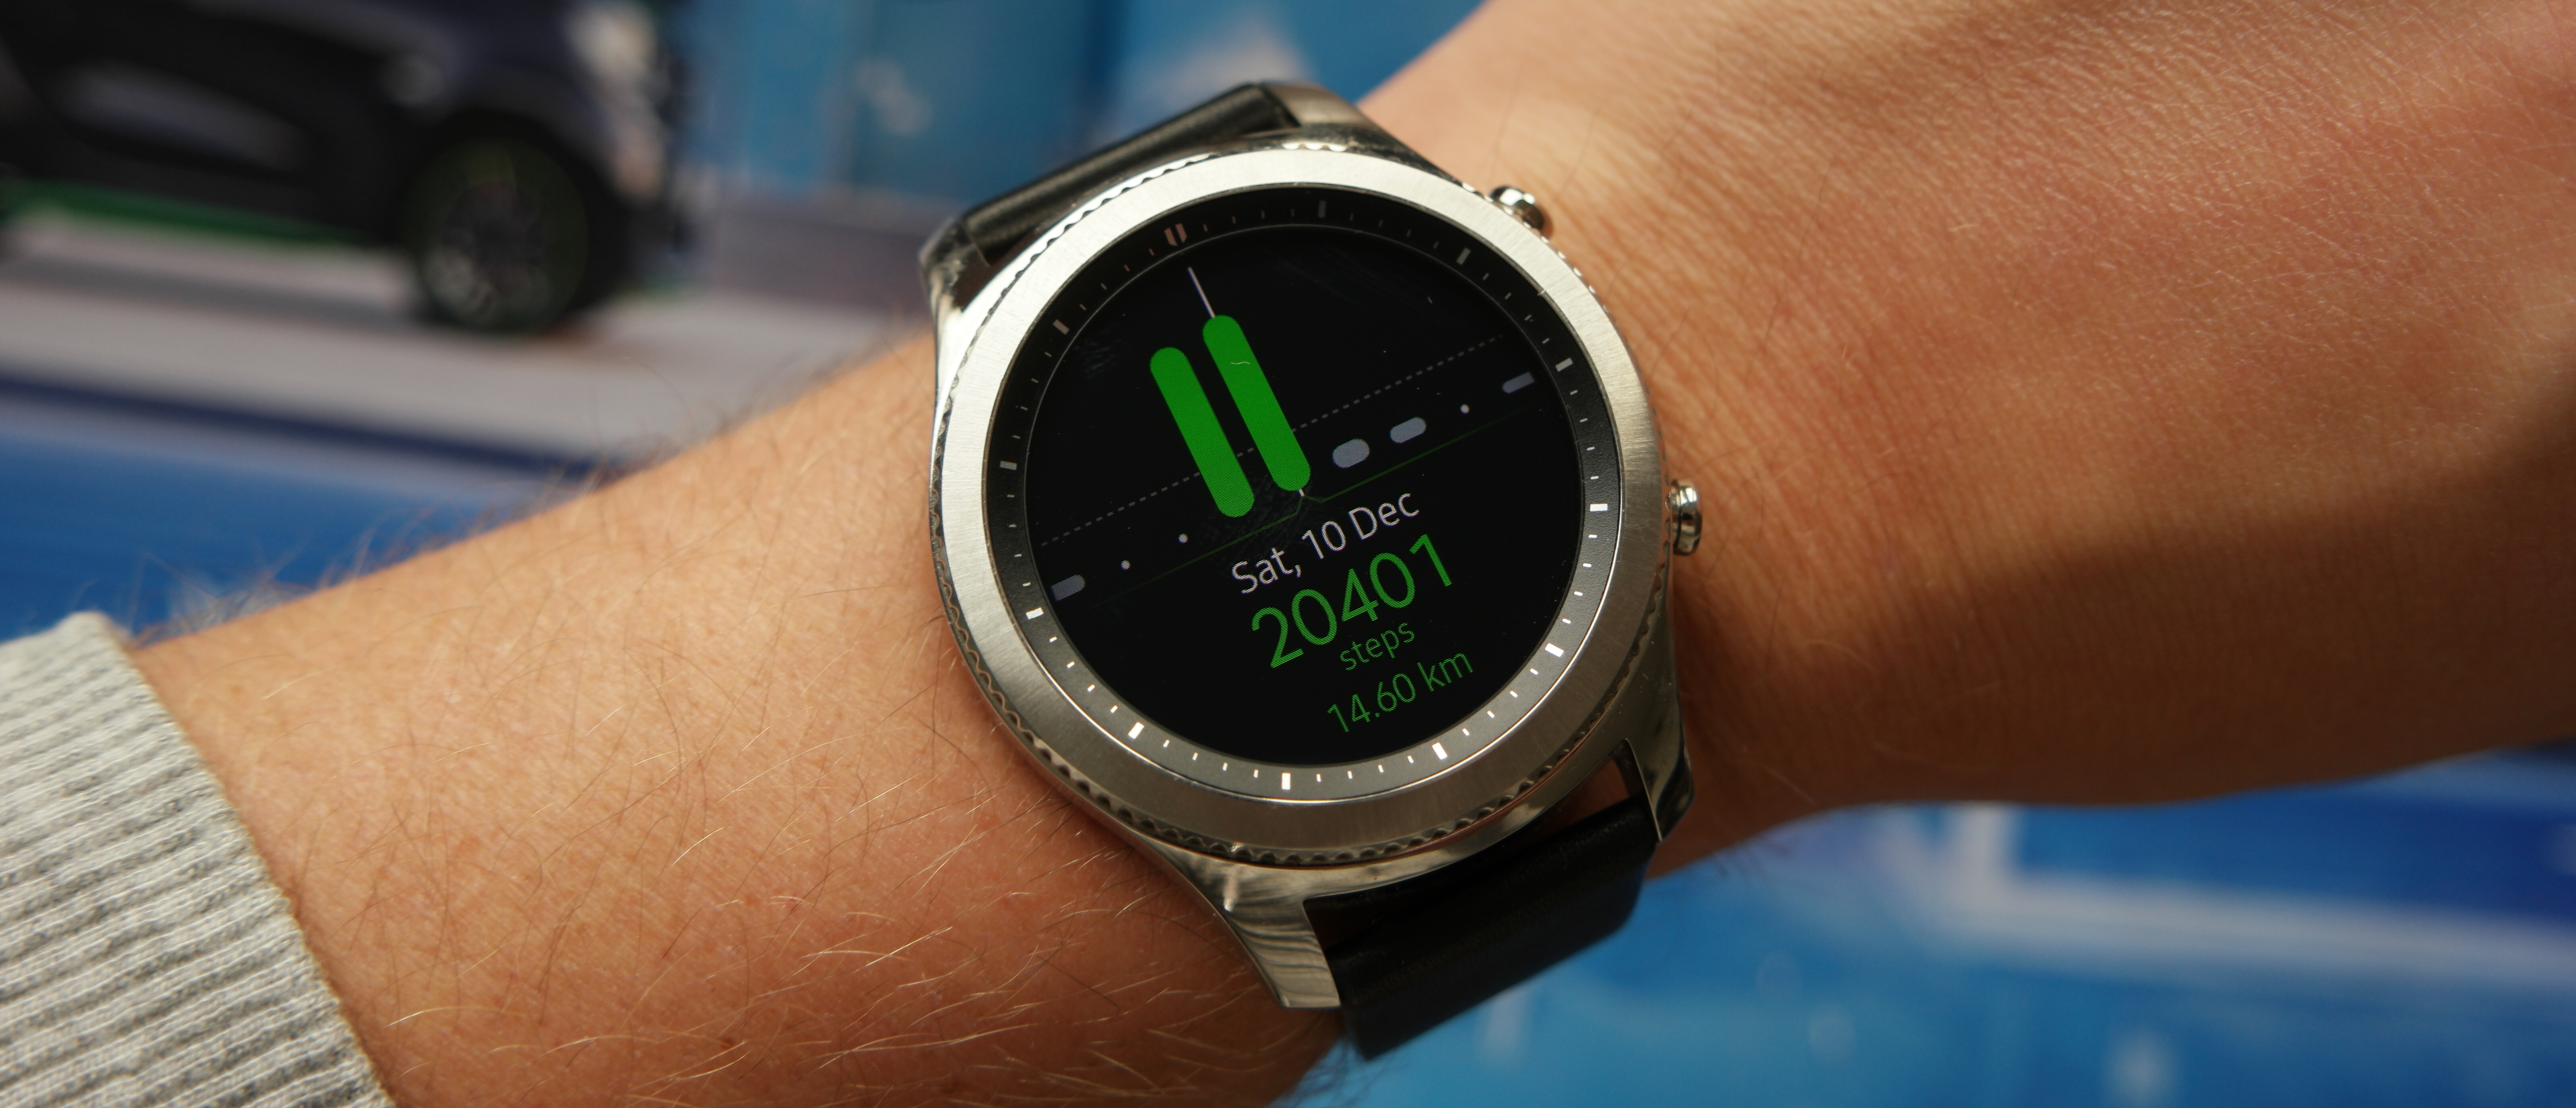 Samsung Gear S3 Classic Review The Smartwatch Weve All Been Silver Csc Like Its Predecessor